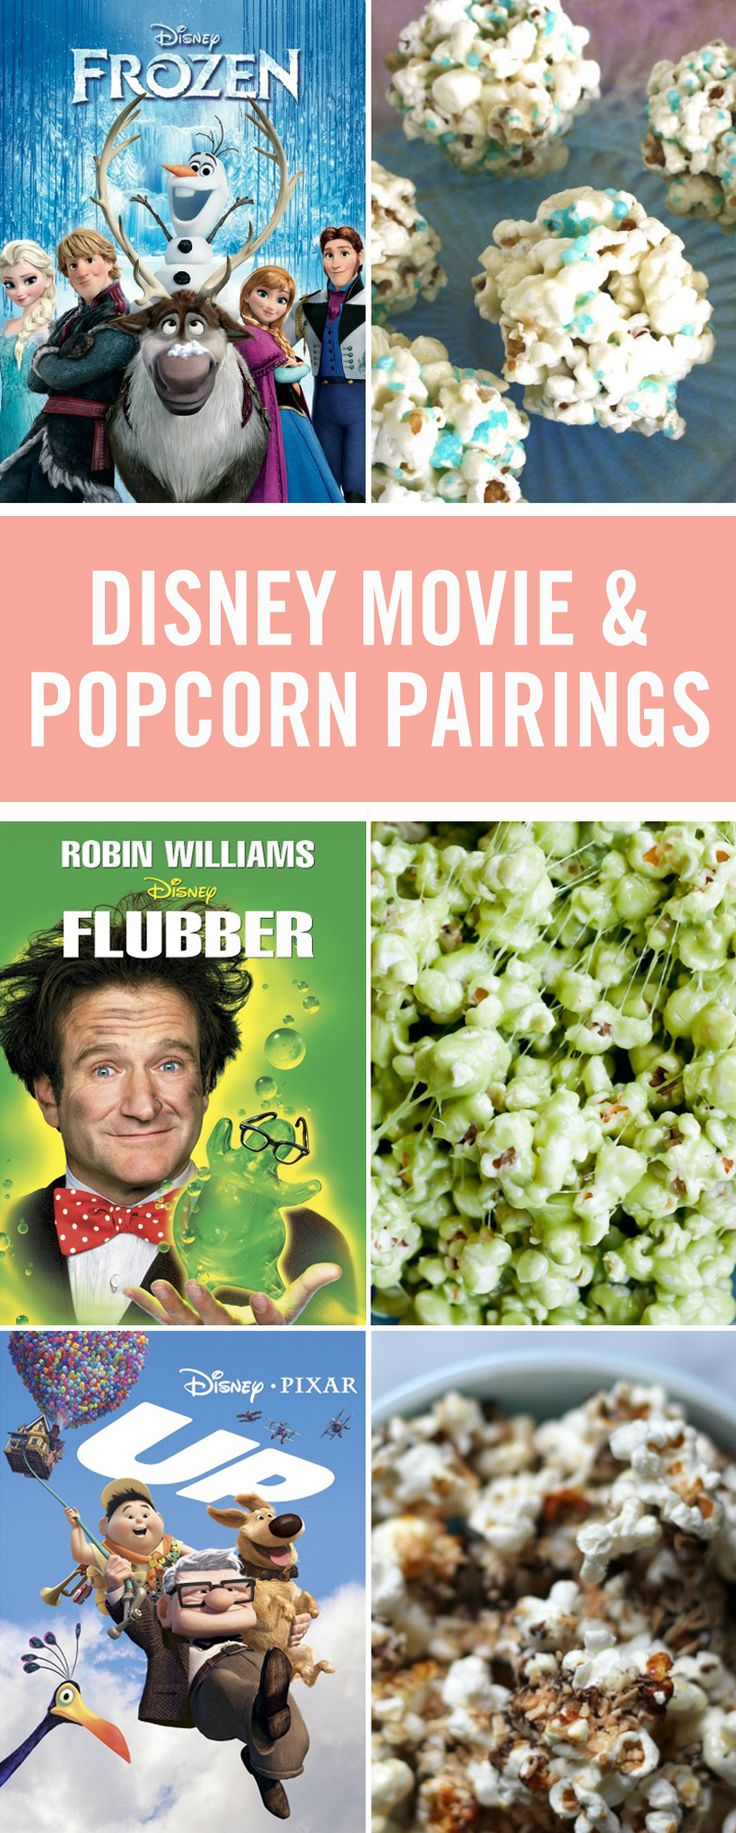 Nothing goes better with movie night than popcorn, but who knew there were so many ways to eat it?! These delicious recipes pair with your favorite Disney movies to make the perfect family movie night snacks from Green Slime Popcorn for Flubber to Rapunzel's Purple Popcorn for Tangled.